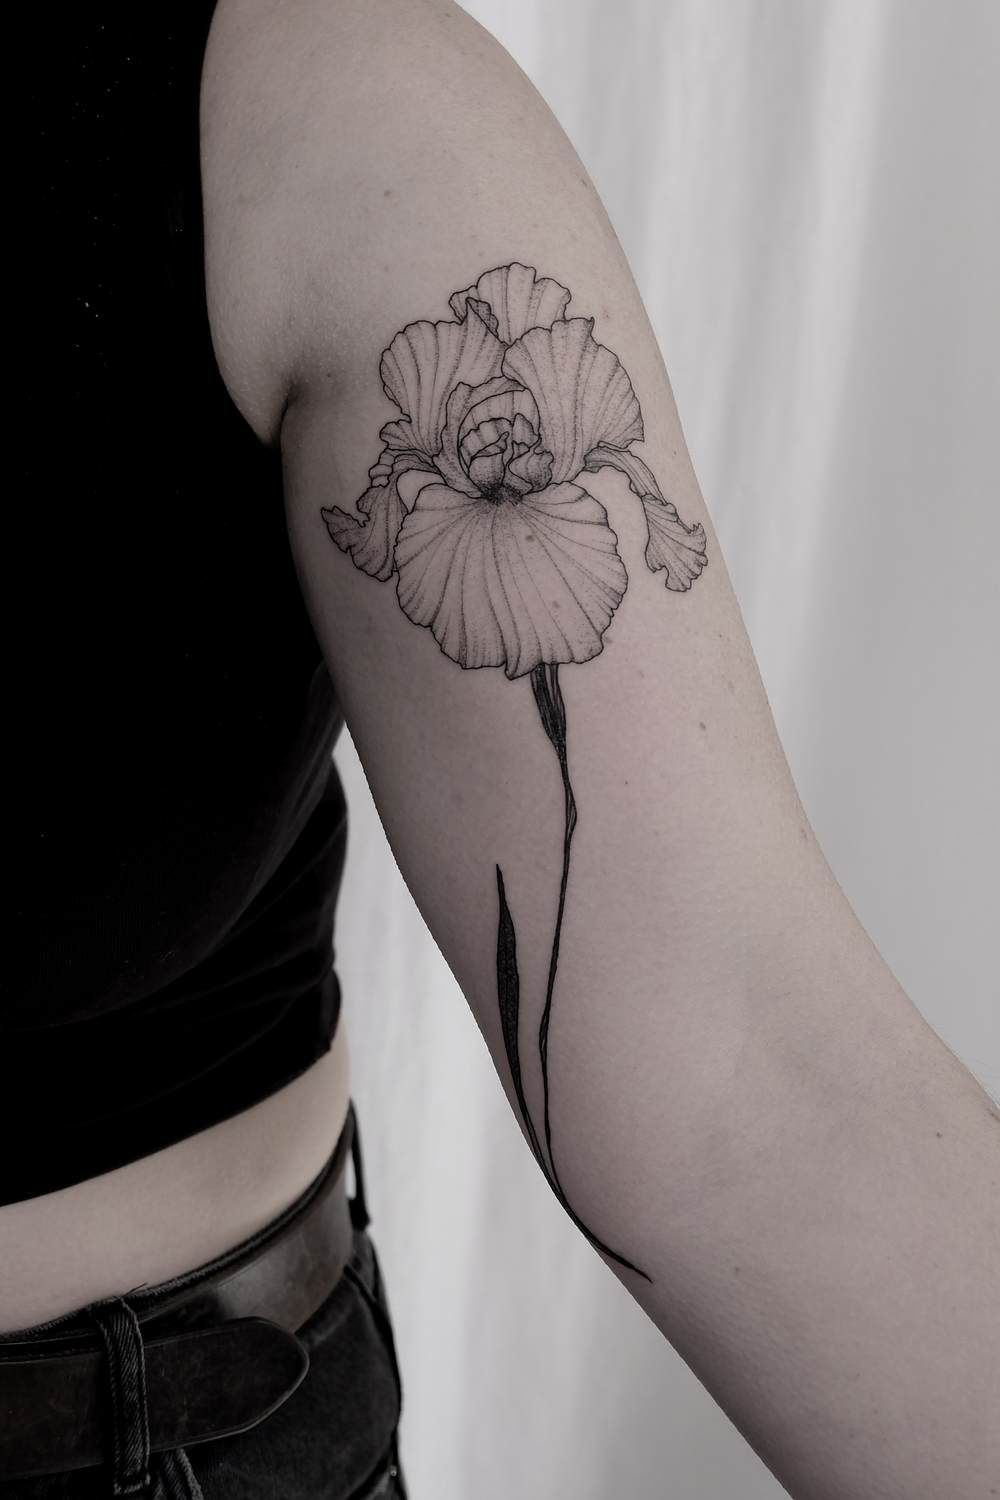 Ttt Taniavaiana Iris Tattoo Iris Flower Tattoo Flower Tattoo Shoulder